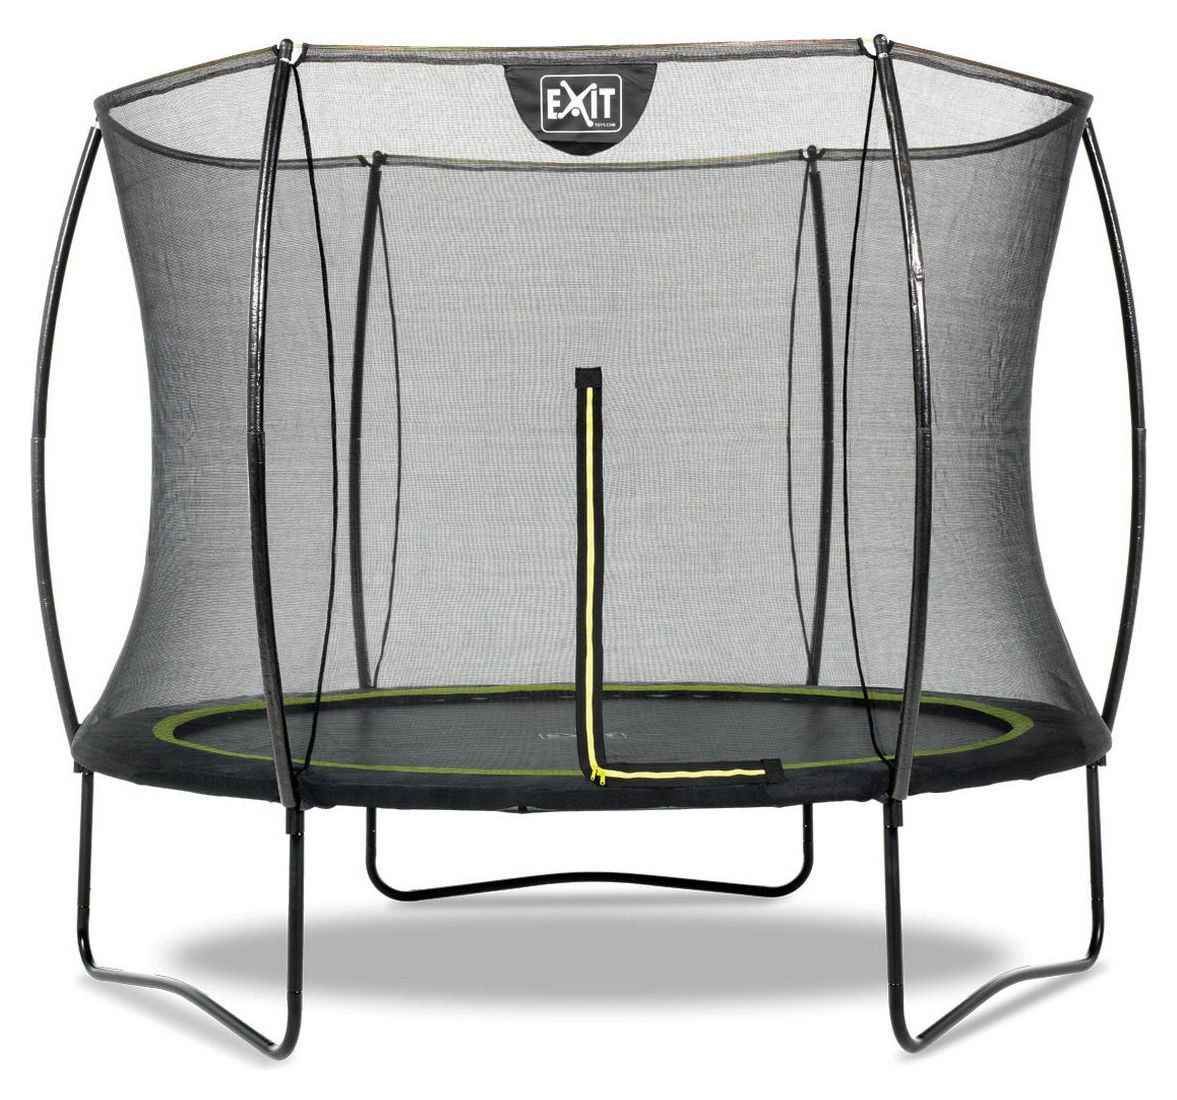 EXIT 8ft Black Edition Trampoline with Enclosure